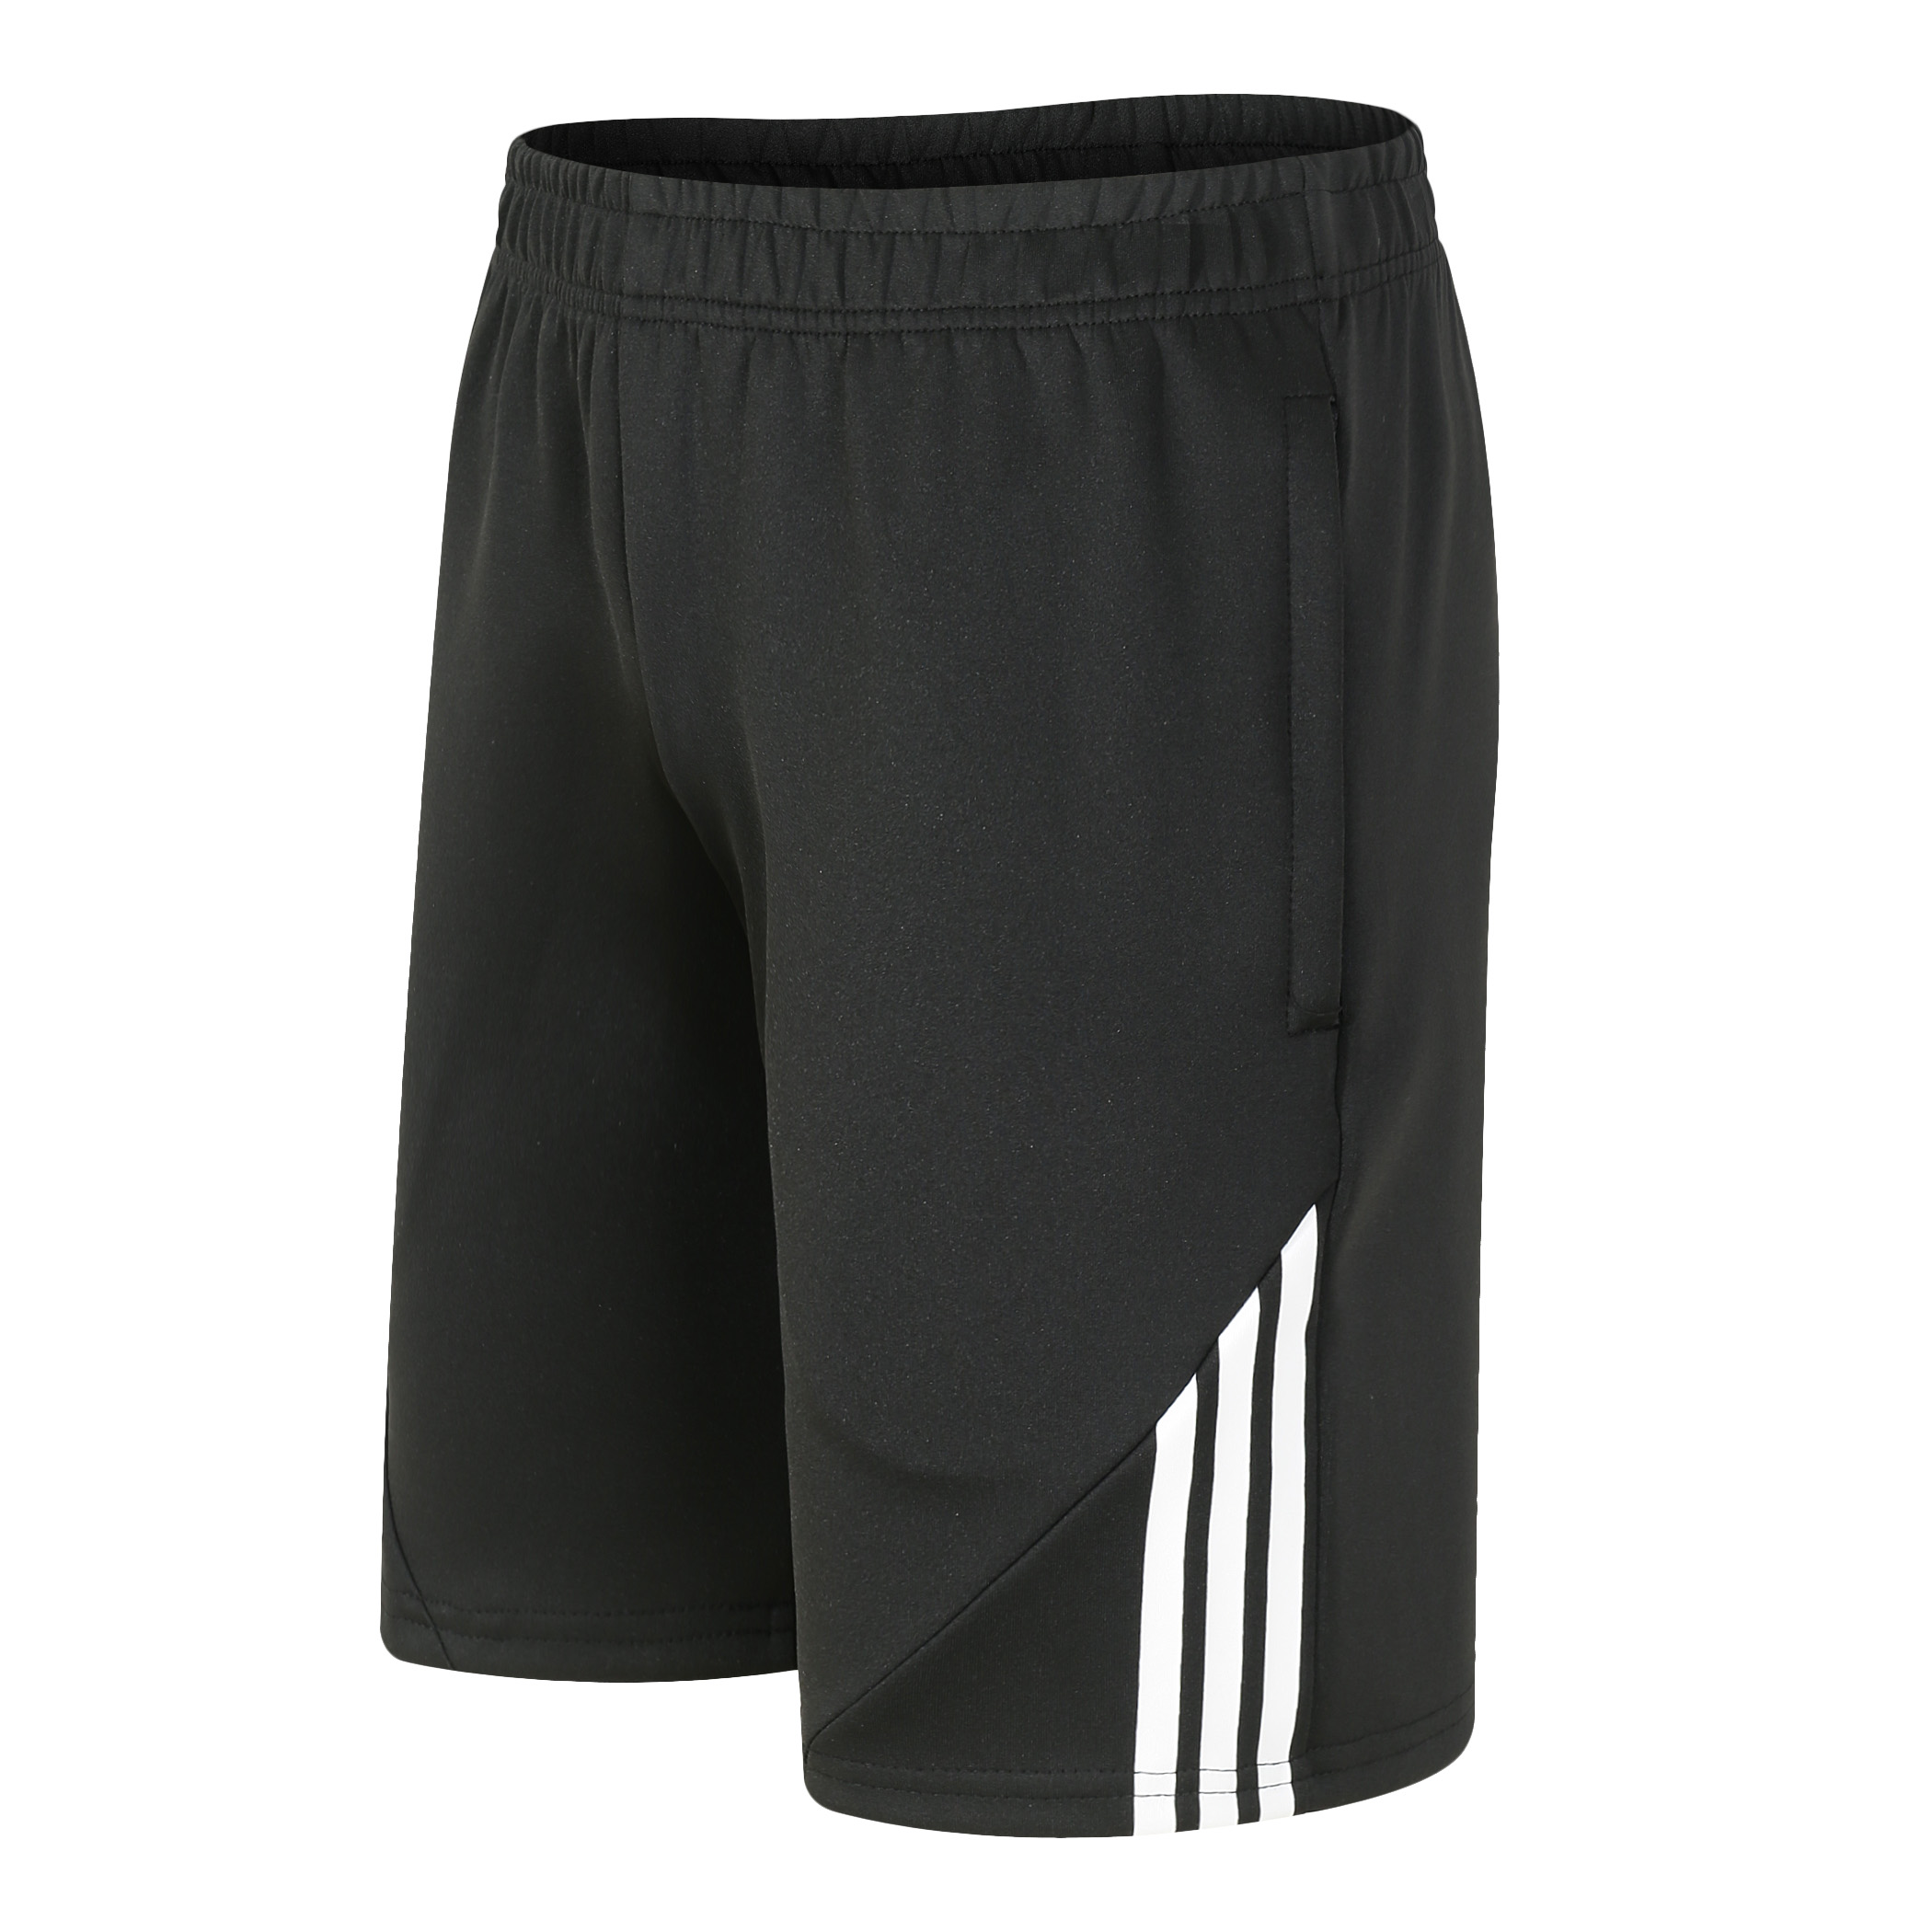 Quick Dry Running Shorts Men Solid Sports Clothing Fitness Bodybuilding Short Pants Sport Homme Gym Training Beach Shorts